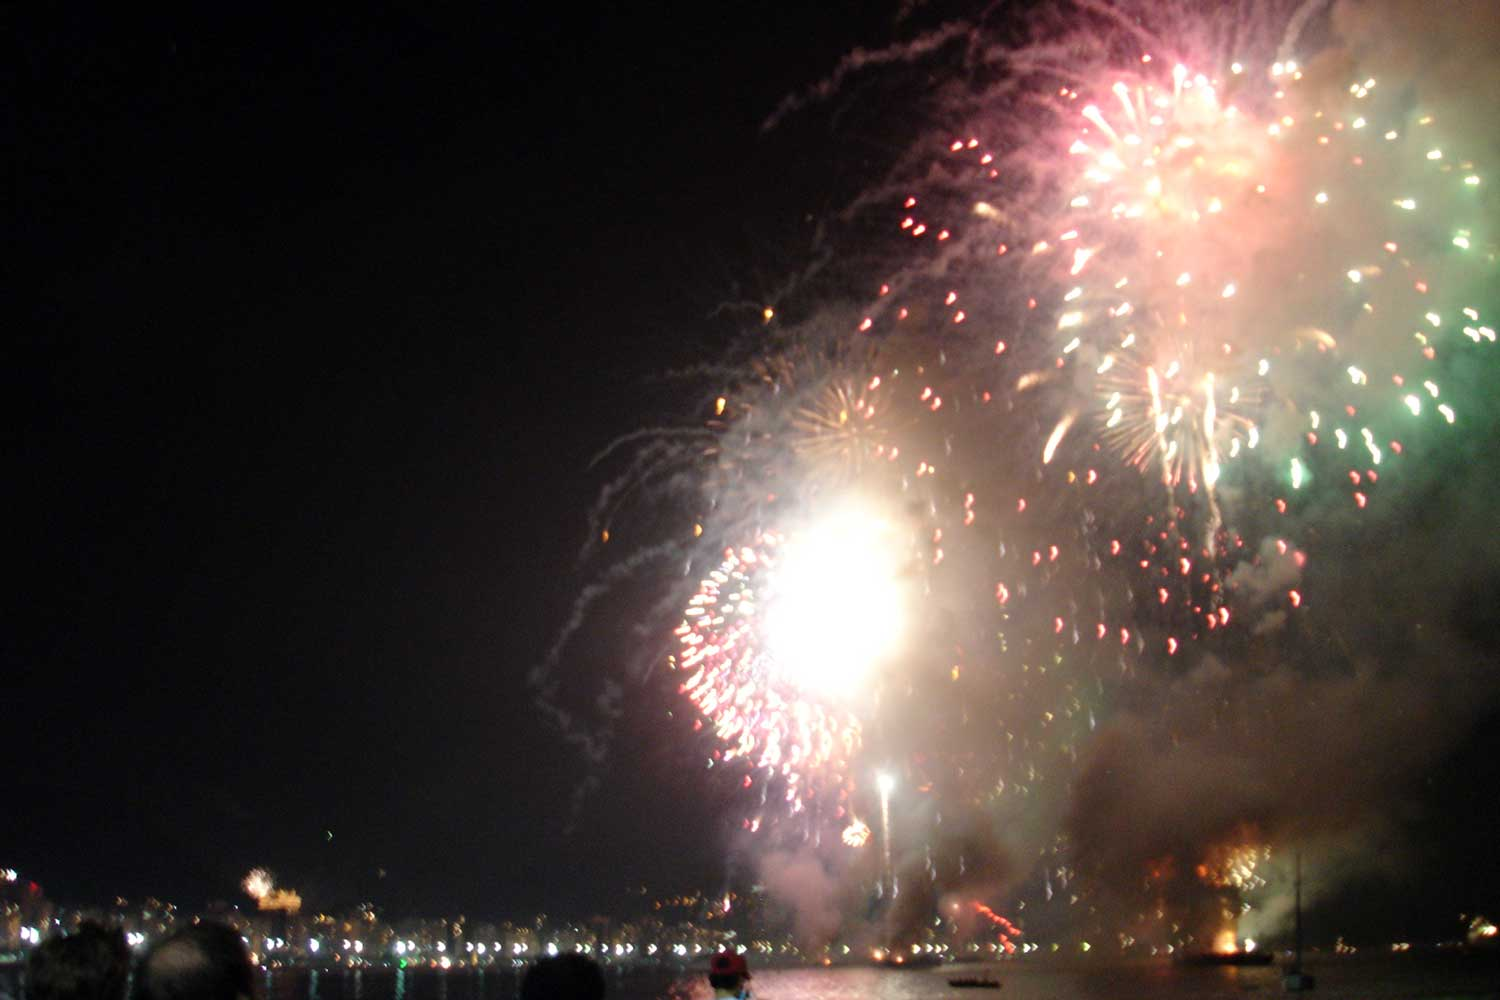 Brazilian New Year's Eve fireworks in Rio